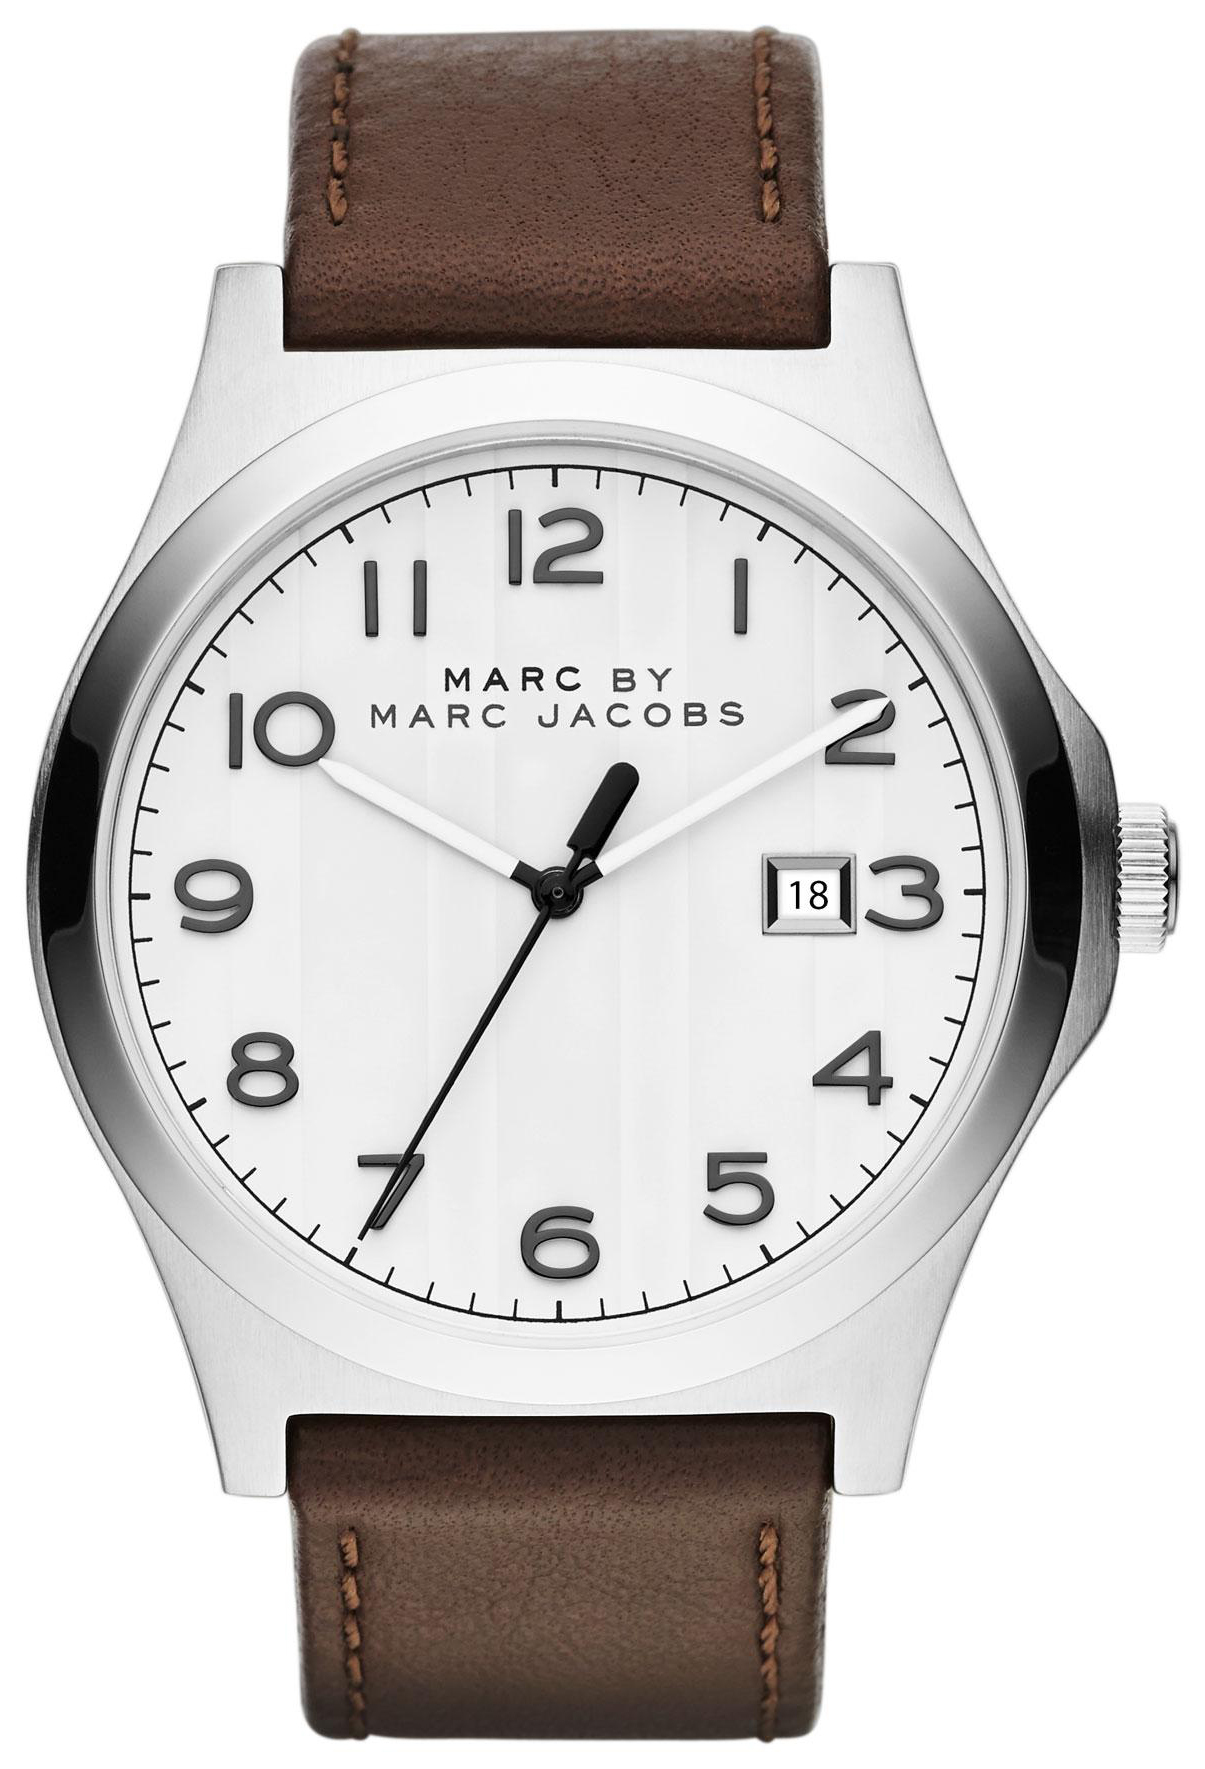 Marc by Marc Jacobs Jimmy Herreklokke MBM5045 Hvit/Lær Ø43 mm - Marc by Marc Jacobs